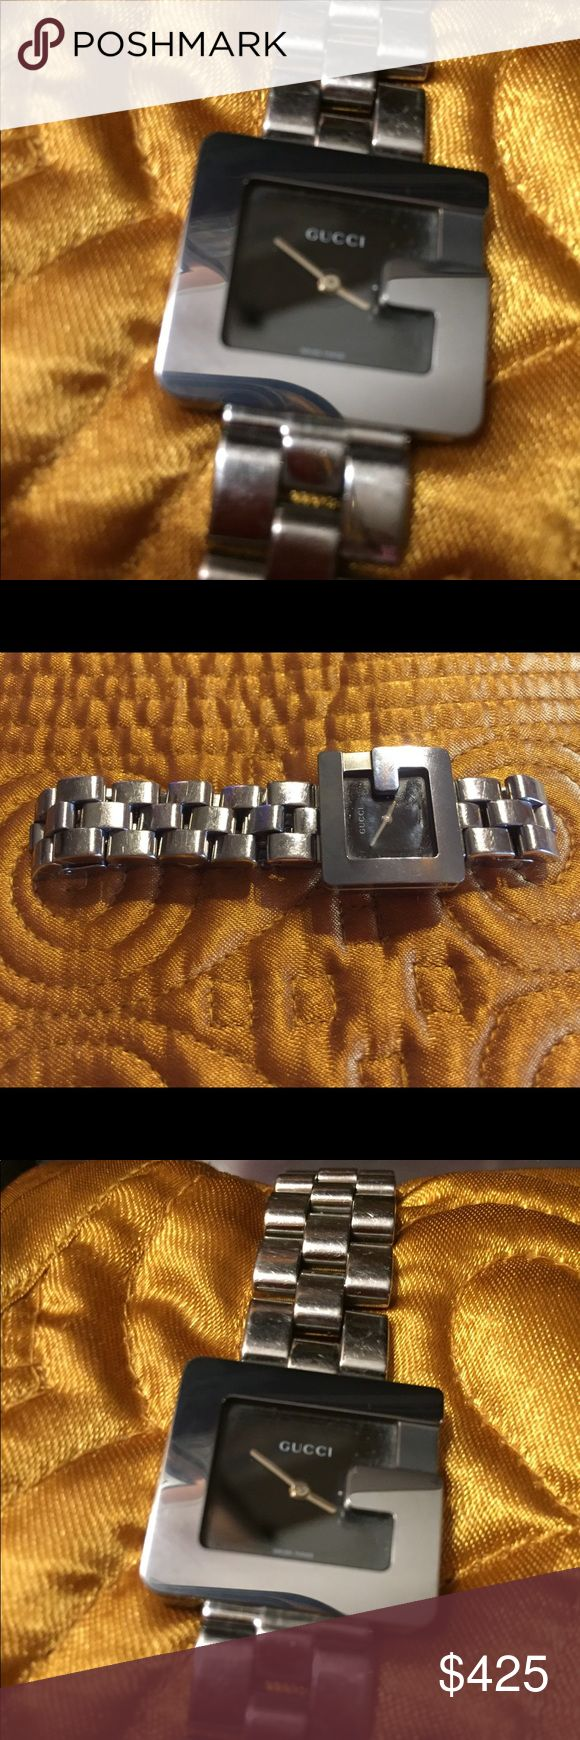 """Authentic lady's """"G Gucci"""" stainless steel watch. case:polished stainless steel caseback : stainless screw in Black face; Markers silvertone indices; Bracelet stainless steel clasp. dust bag and a box. Note: The box and bag are not marked;(is what I received when bought) Gucci Accessories Watches"""